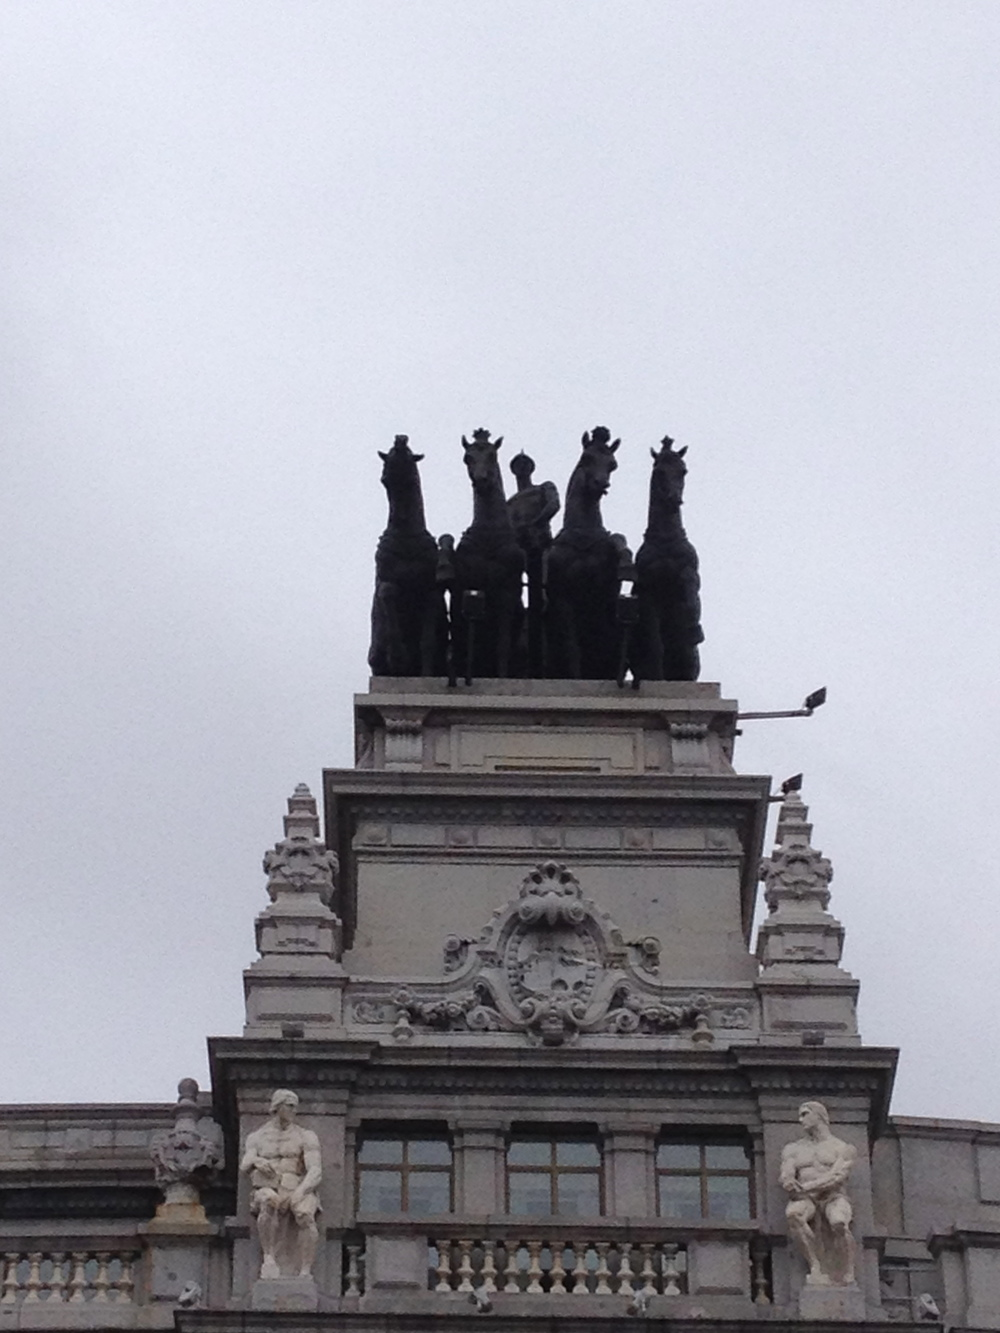 Spain is full of great statues on the tops of their buildings.